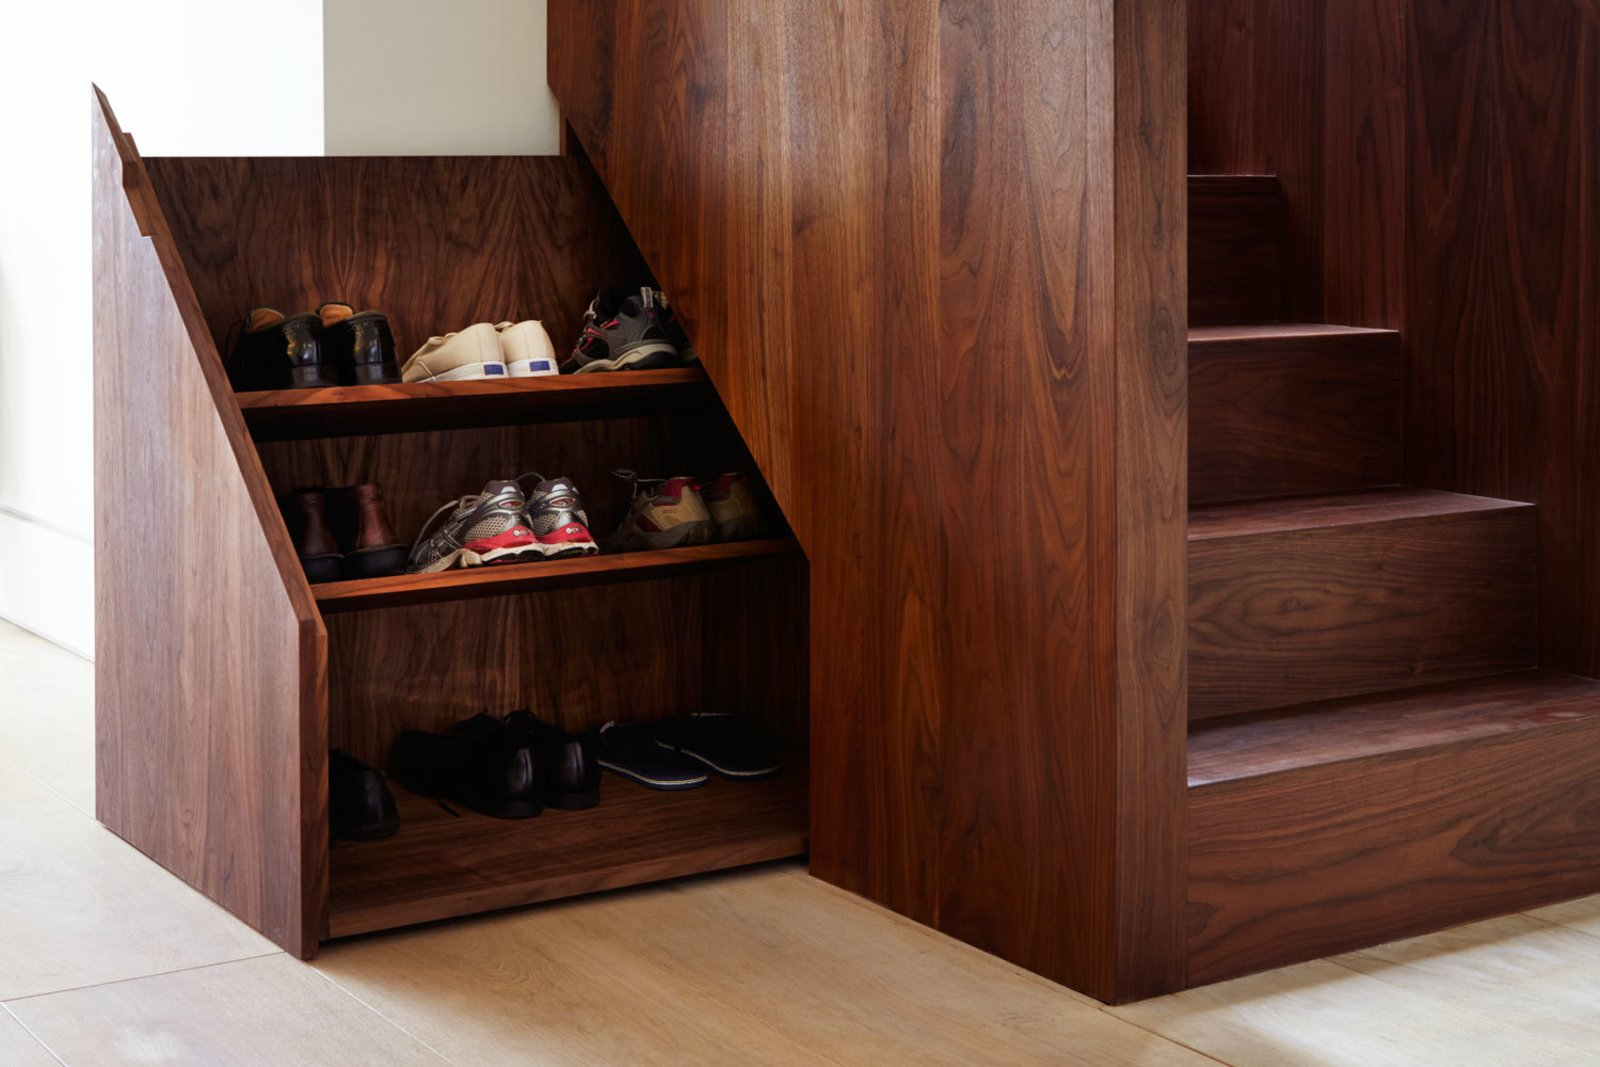 Photo caption: The base of the stairwell includes a hidden compartment to conveniently store shoes. 10 Clever Ways to Sneak Storage Into Your Renovation - Photo 9 of 10